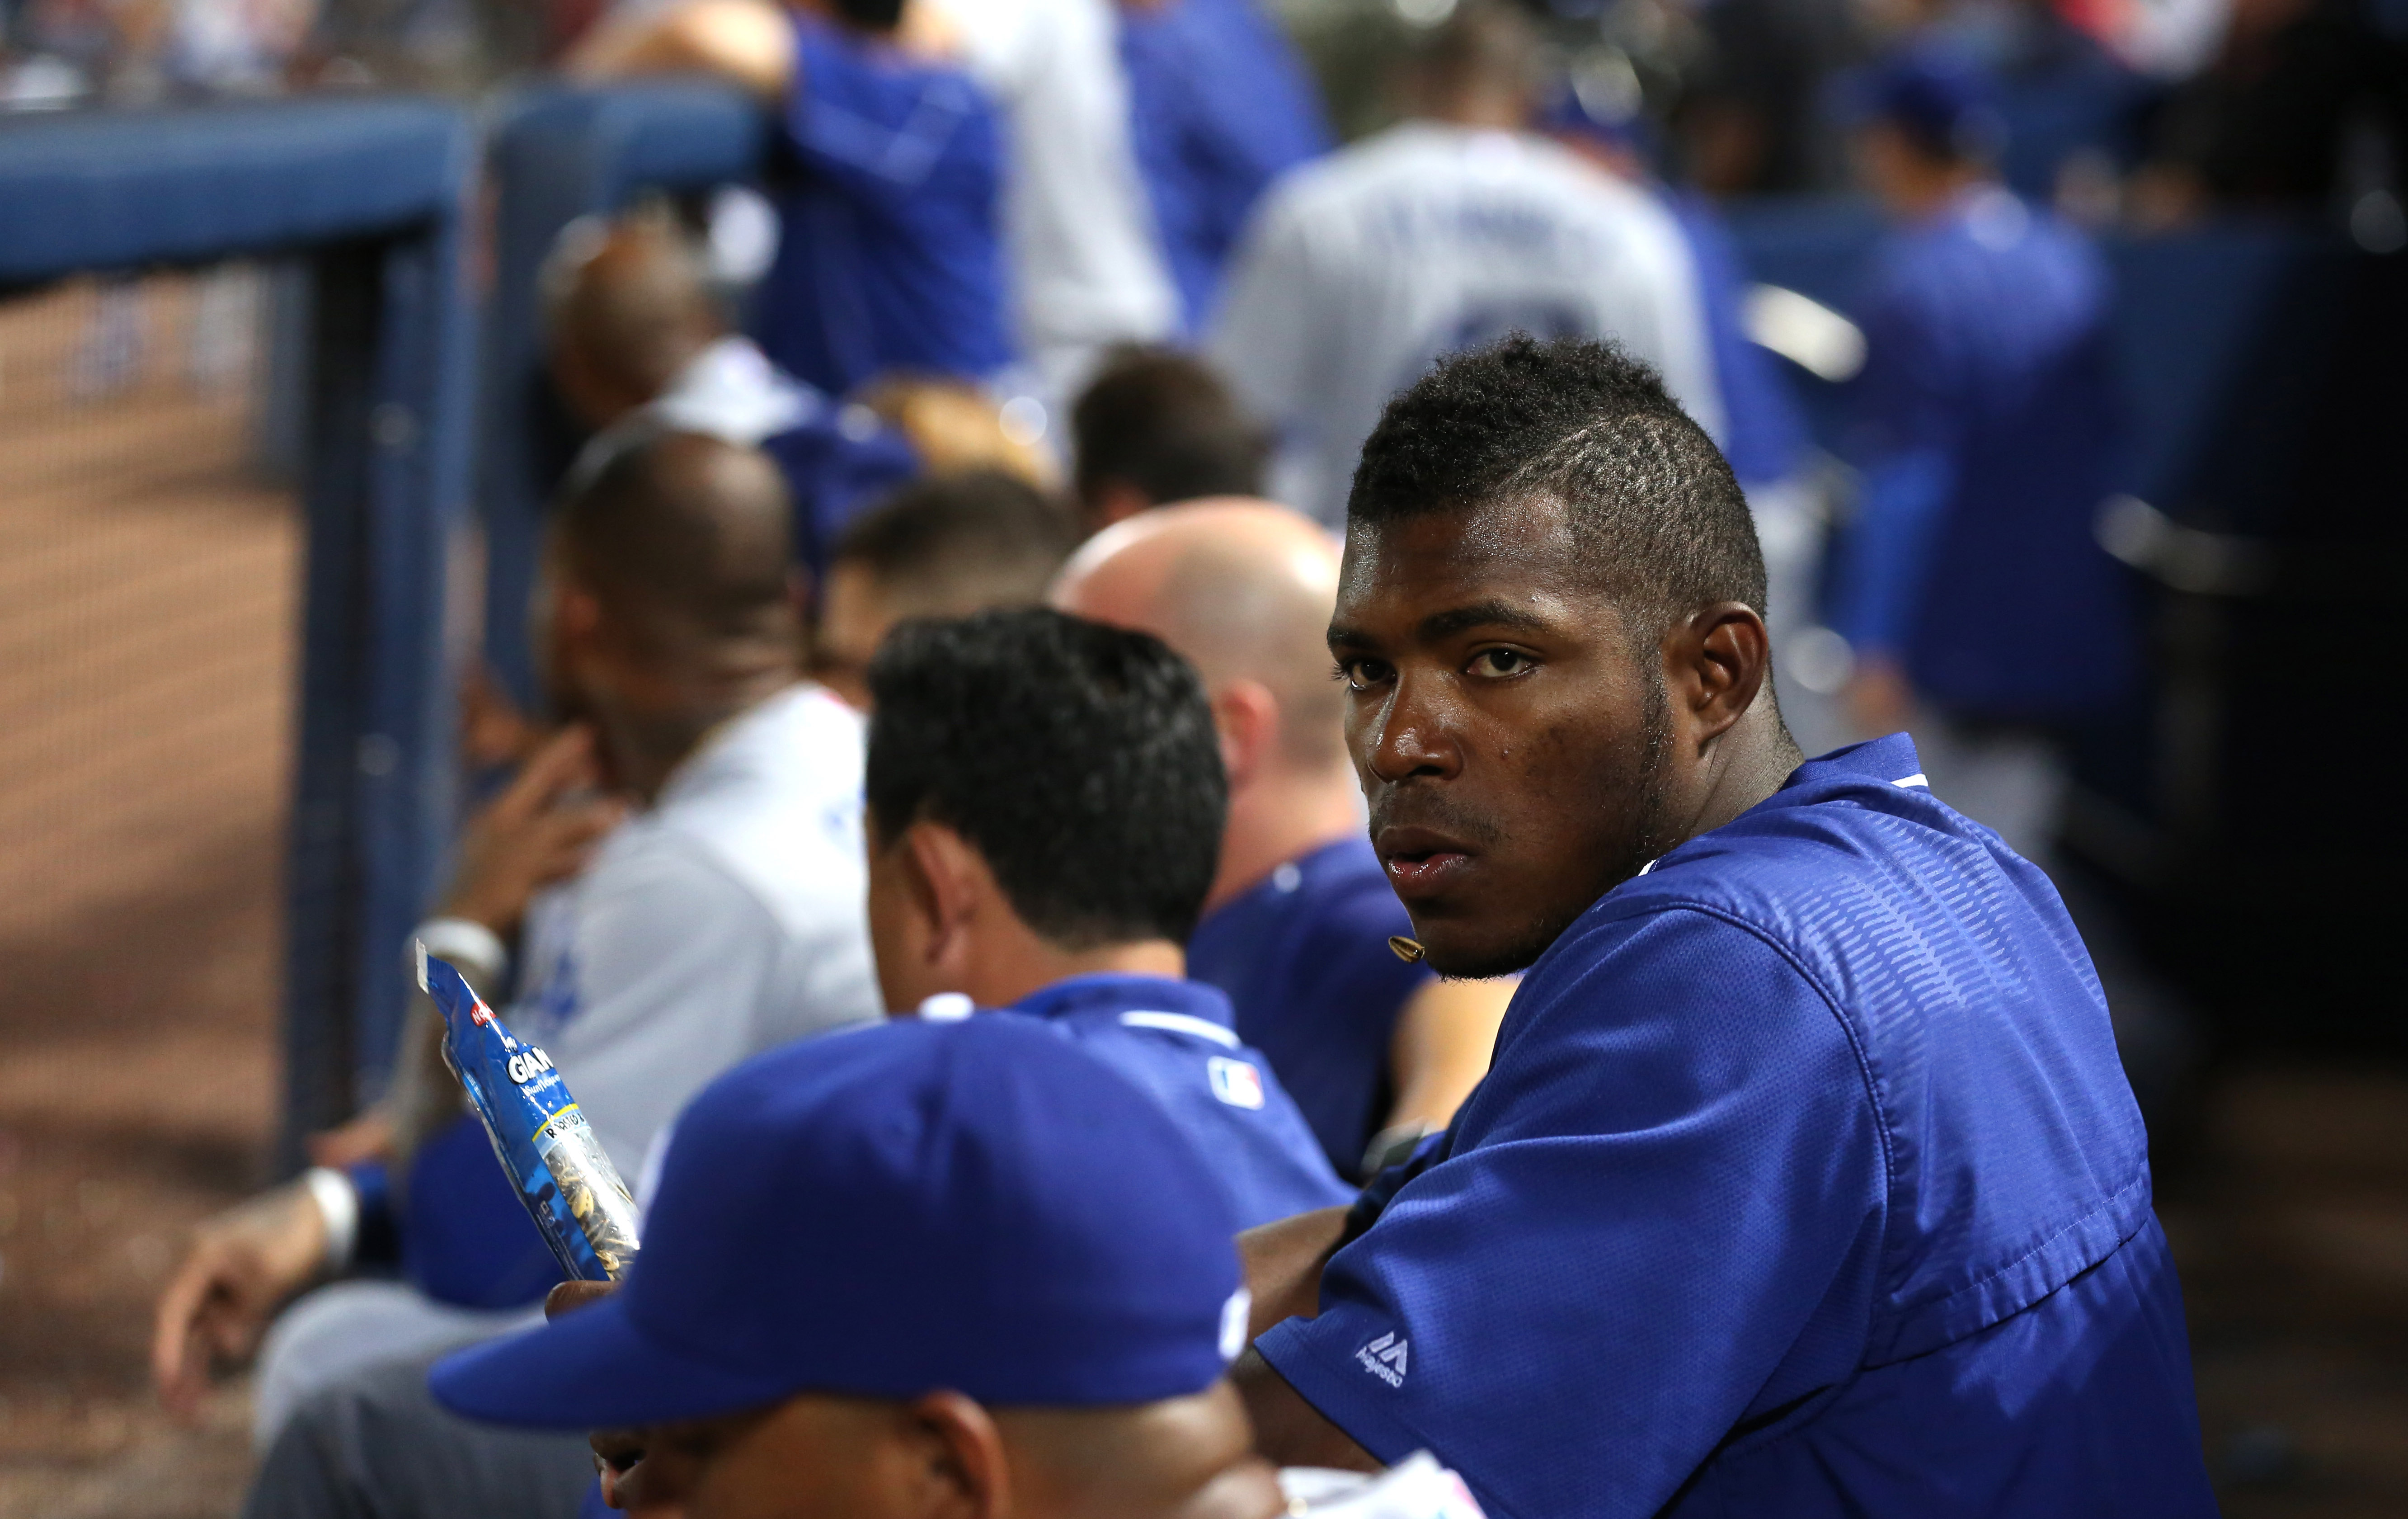 Yasiel Puig seems likely to be on the sidelines for the Dodgers during the National League Division Series.